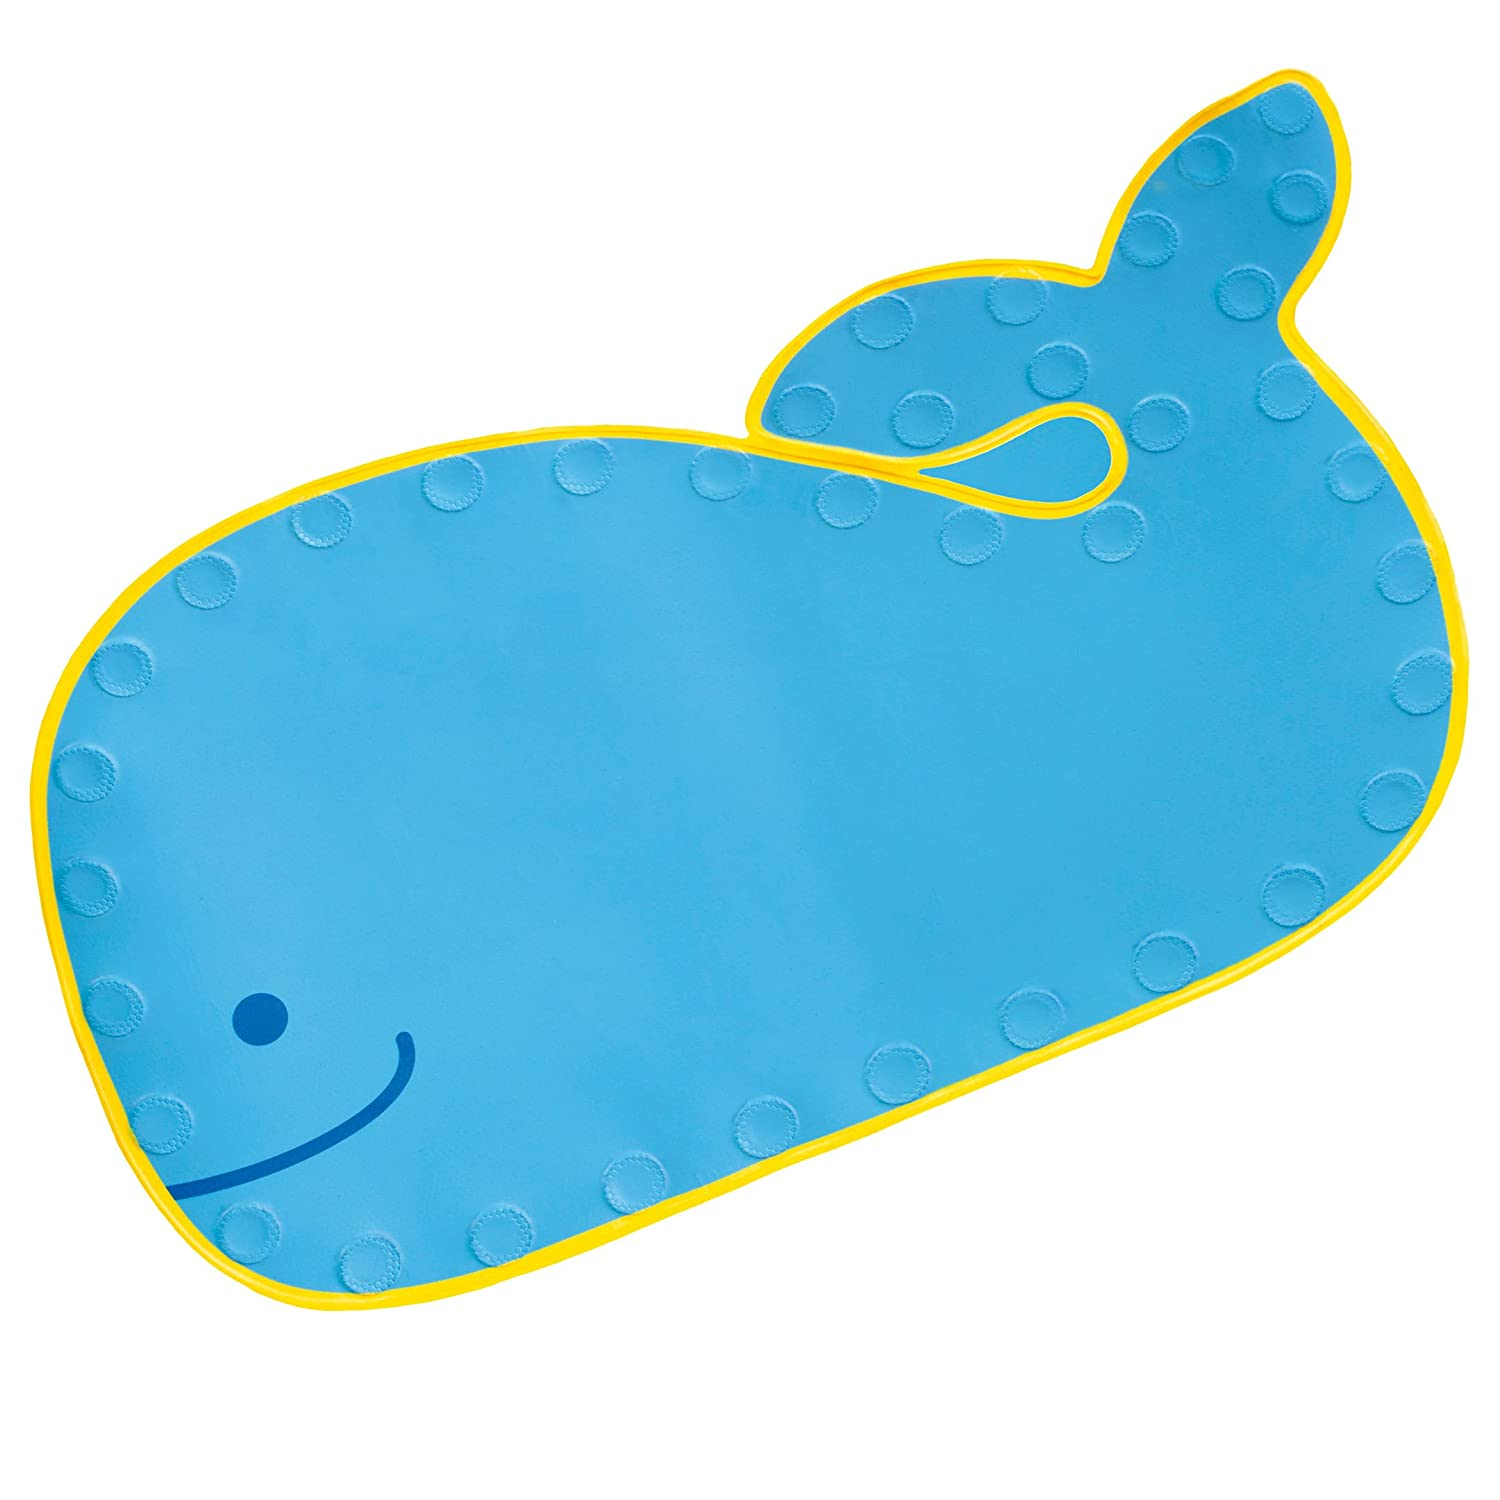 - Amazon.com: Skip Hop Moby Bathmat With Suction Base, Blue: Baby